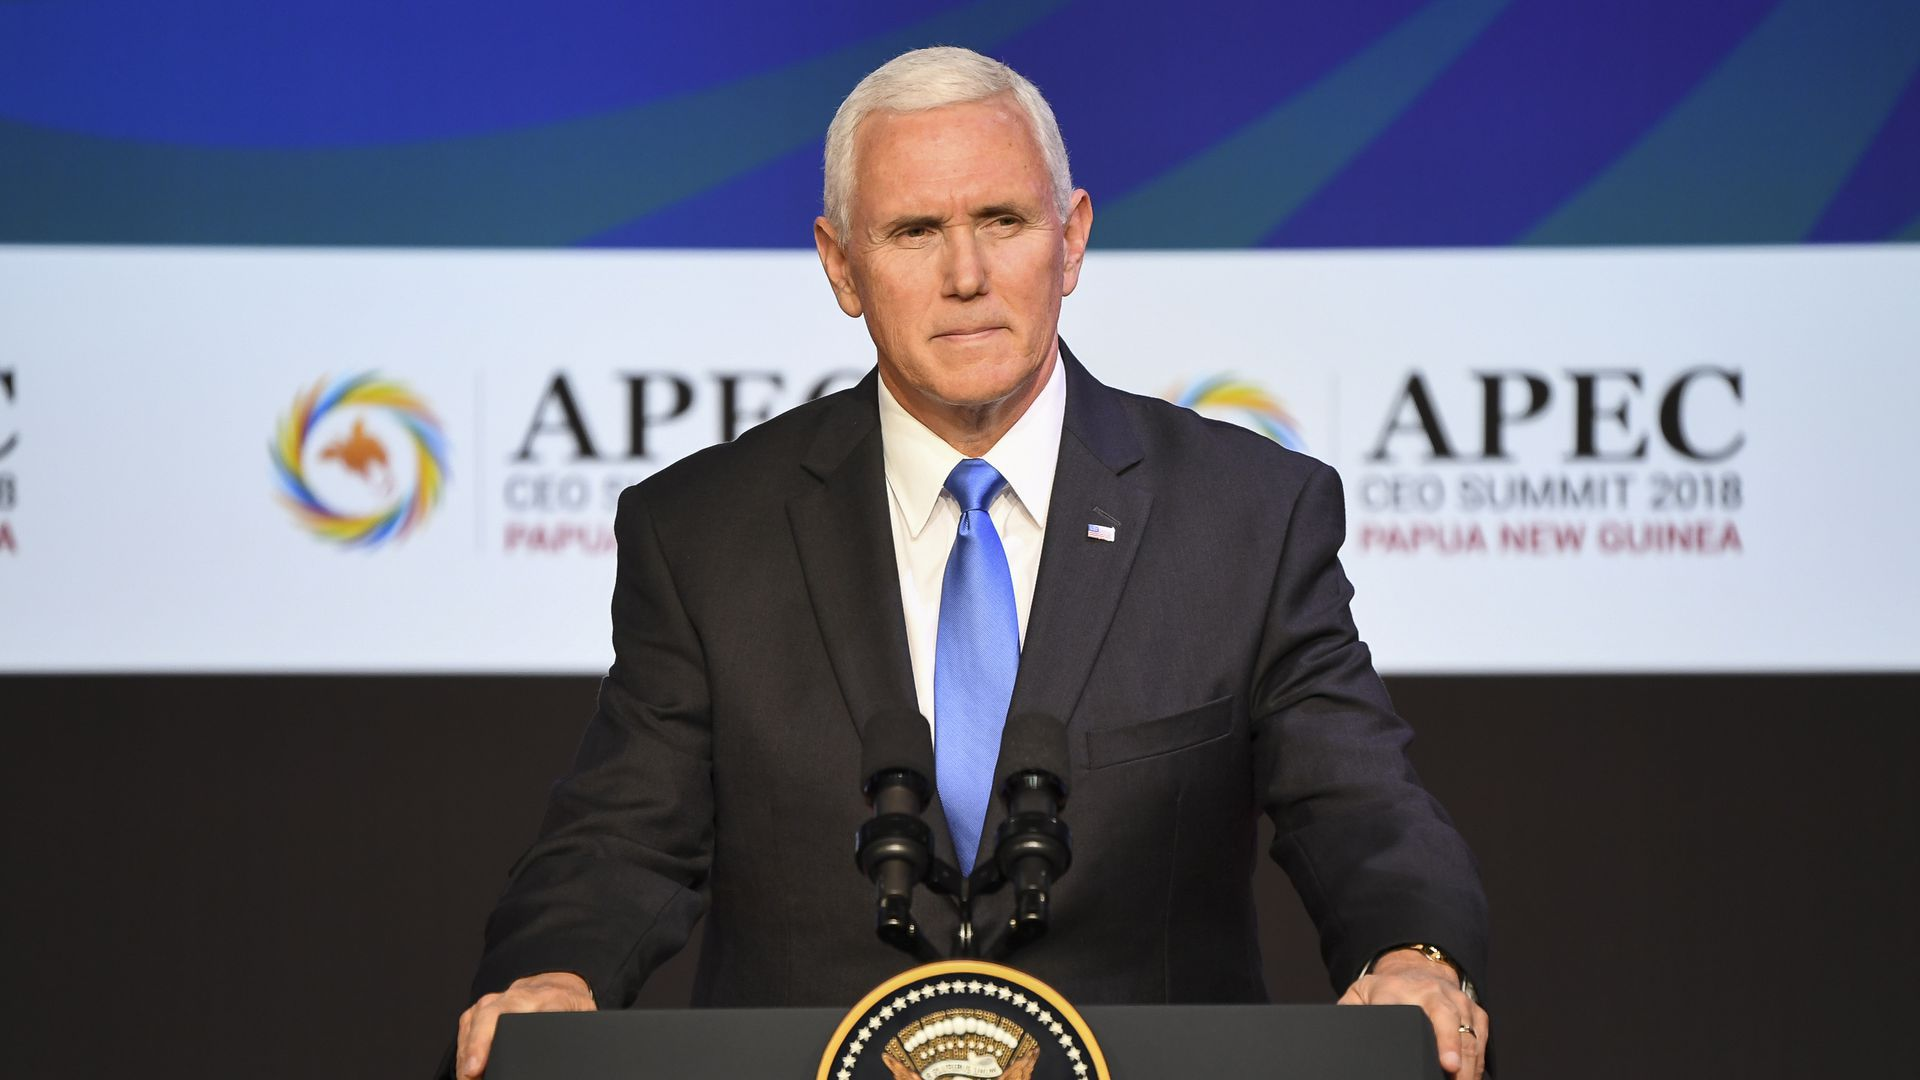 Mike Pence at a podium